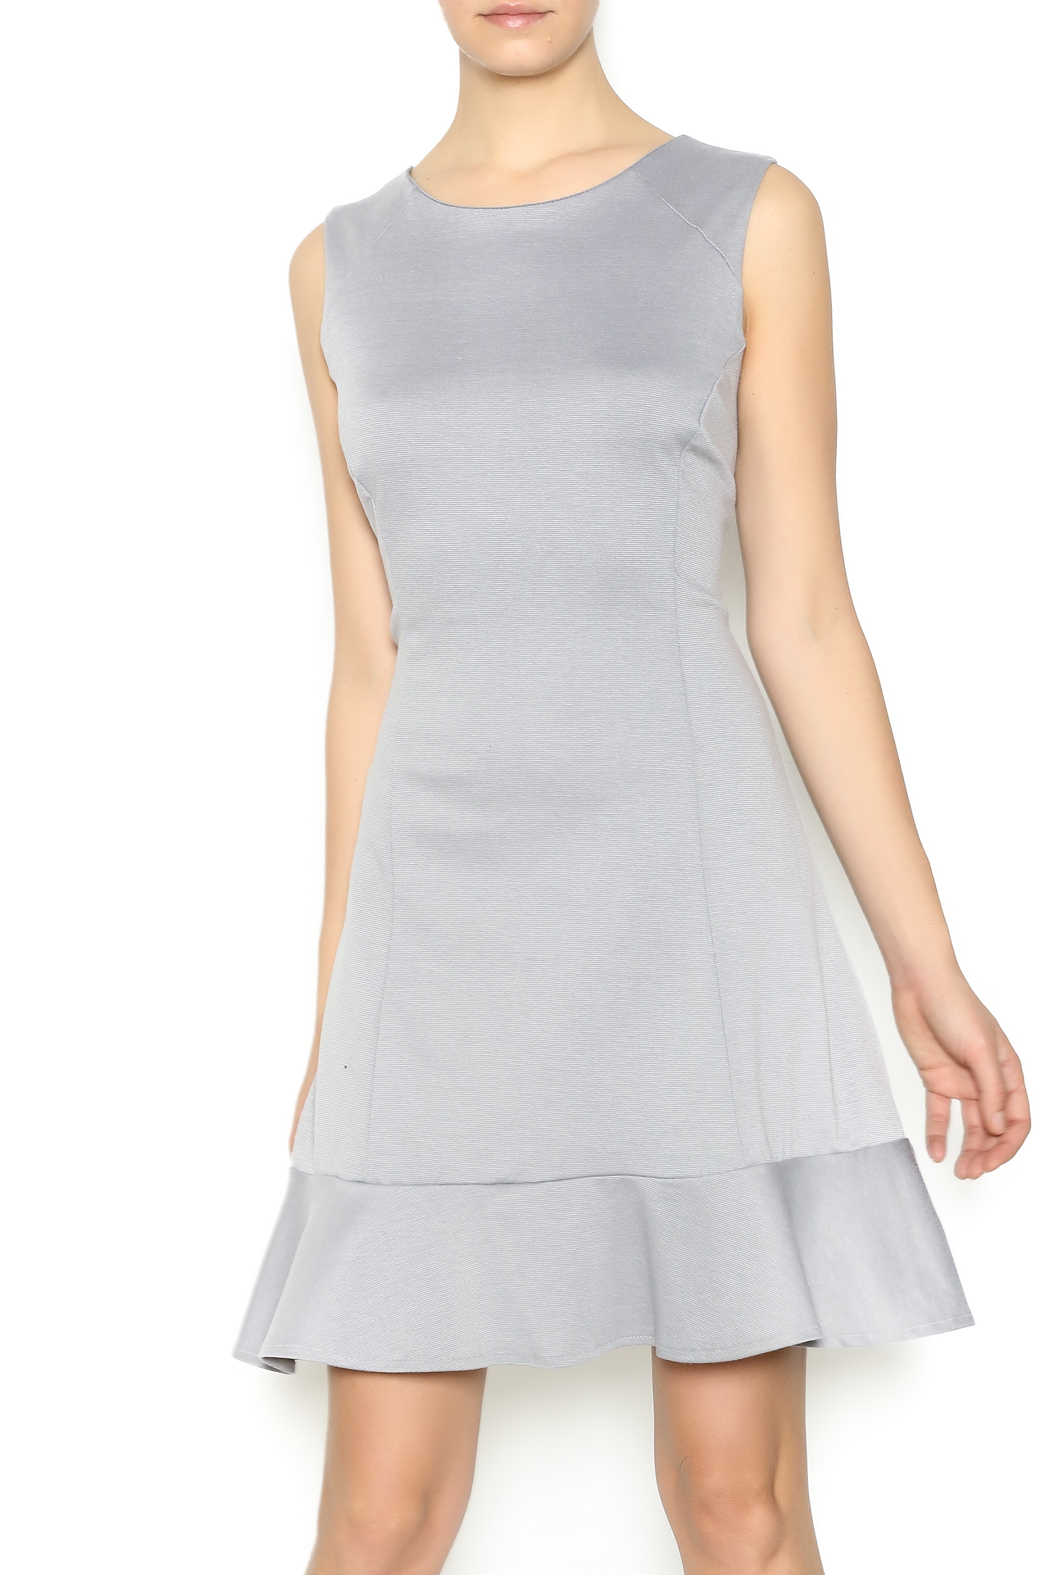 Missy Robertson Grey Dress - Front Cropped Image